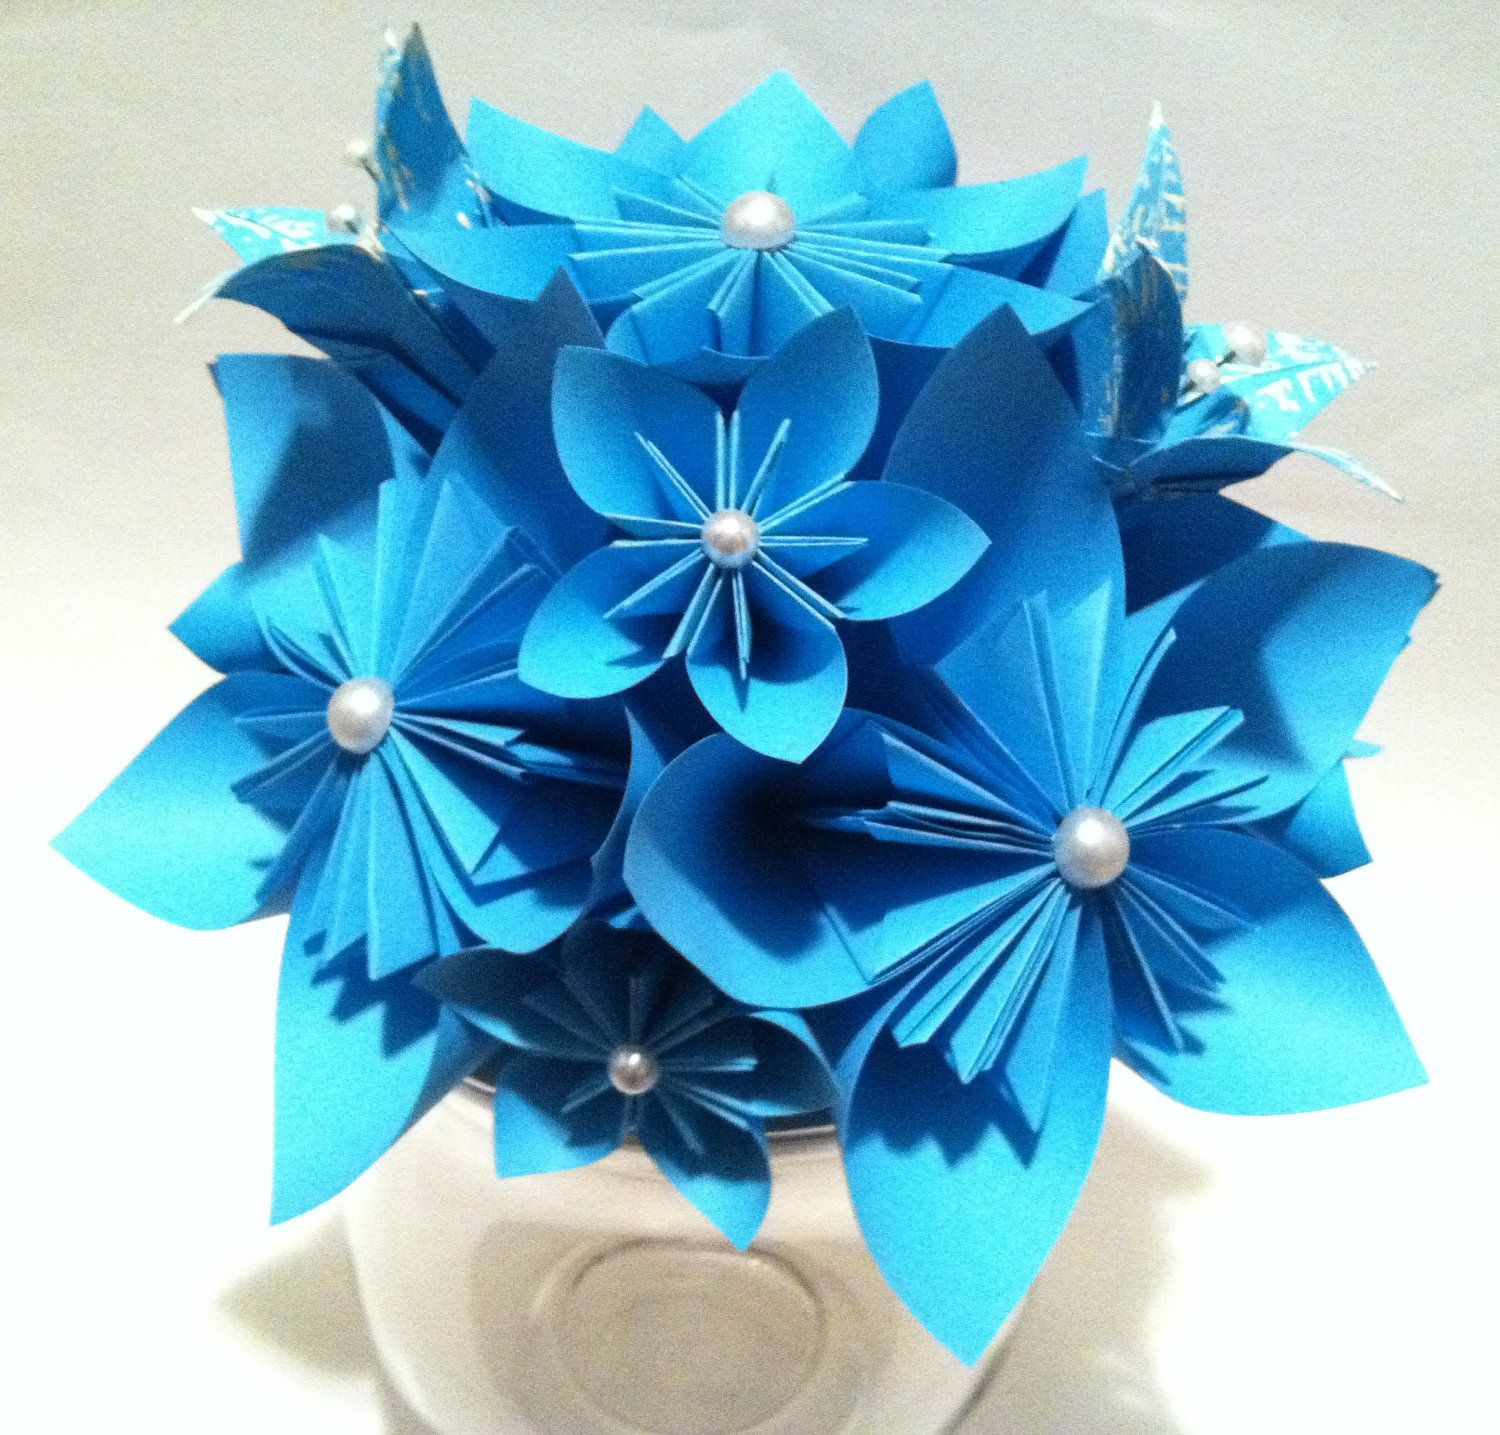 Wedding decorations paper flowers  Origami Wedding Centerpiece paper flowers and lilies made to order